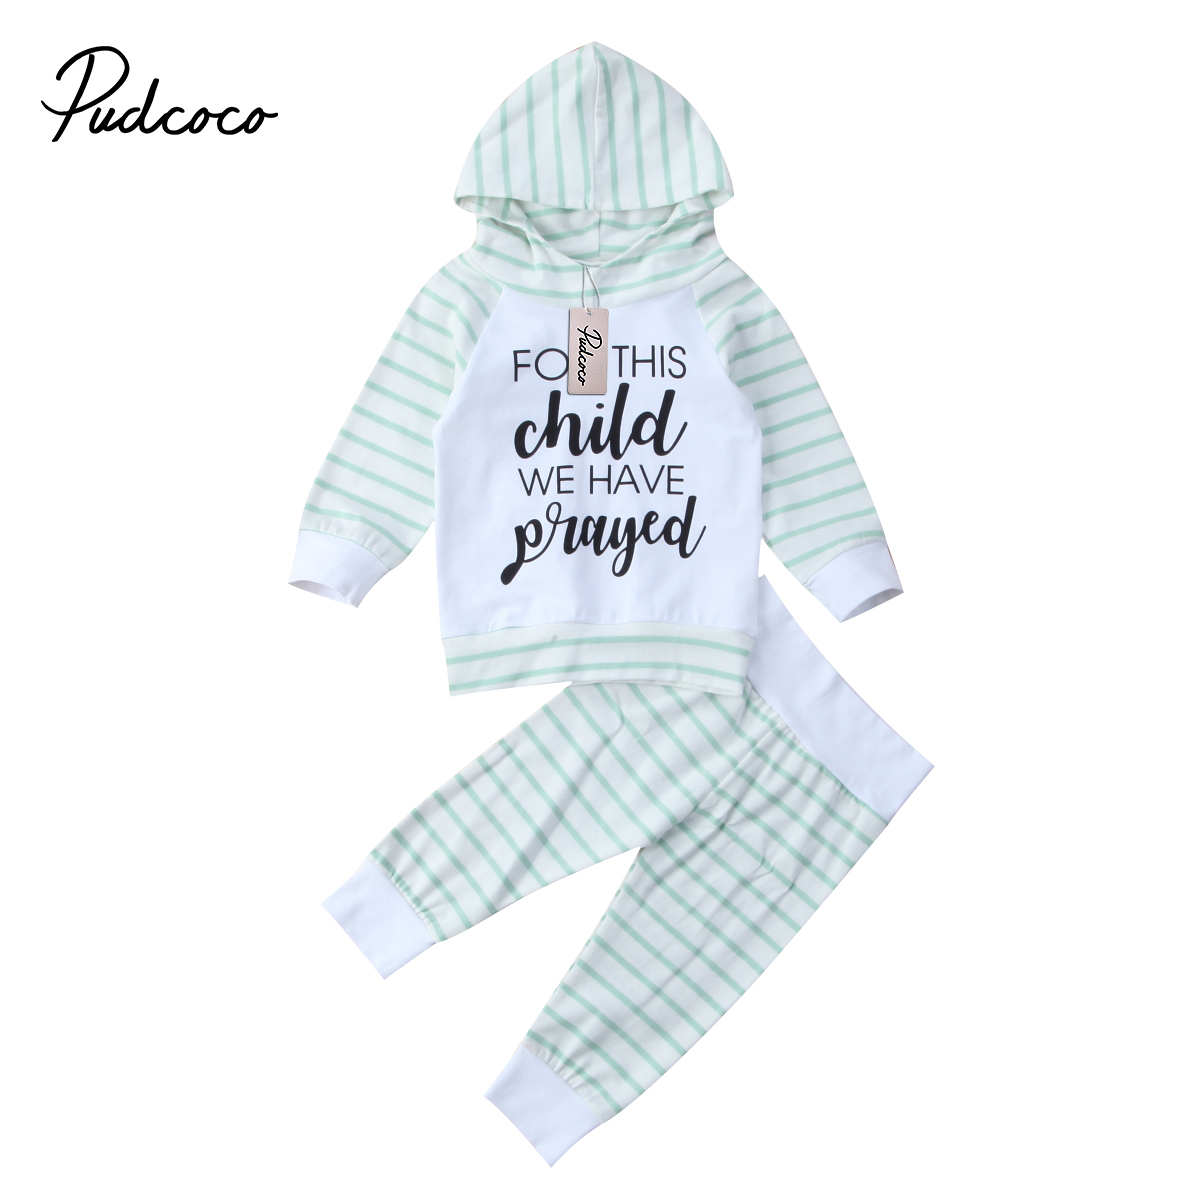 Pudcoco 2PCS Infant Baby Boy Girl Clothes O-Neck Letter Green Stripe Hooded Tops Hoodie+Pants Outfits Set 6-24Months Helen115